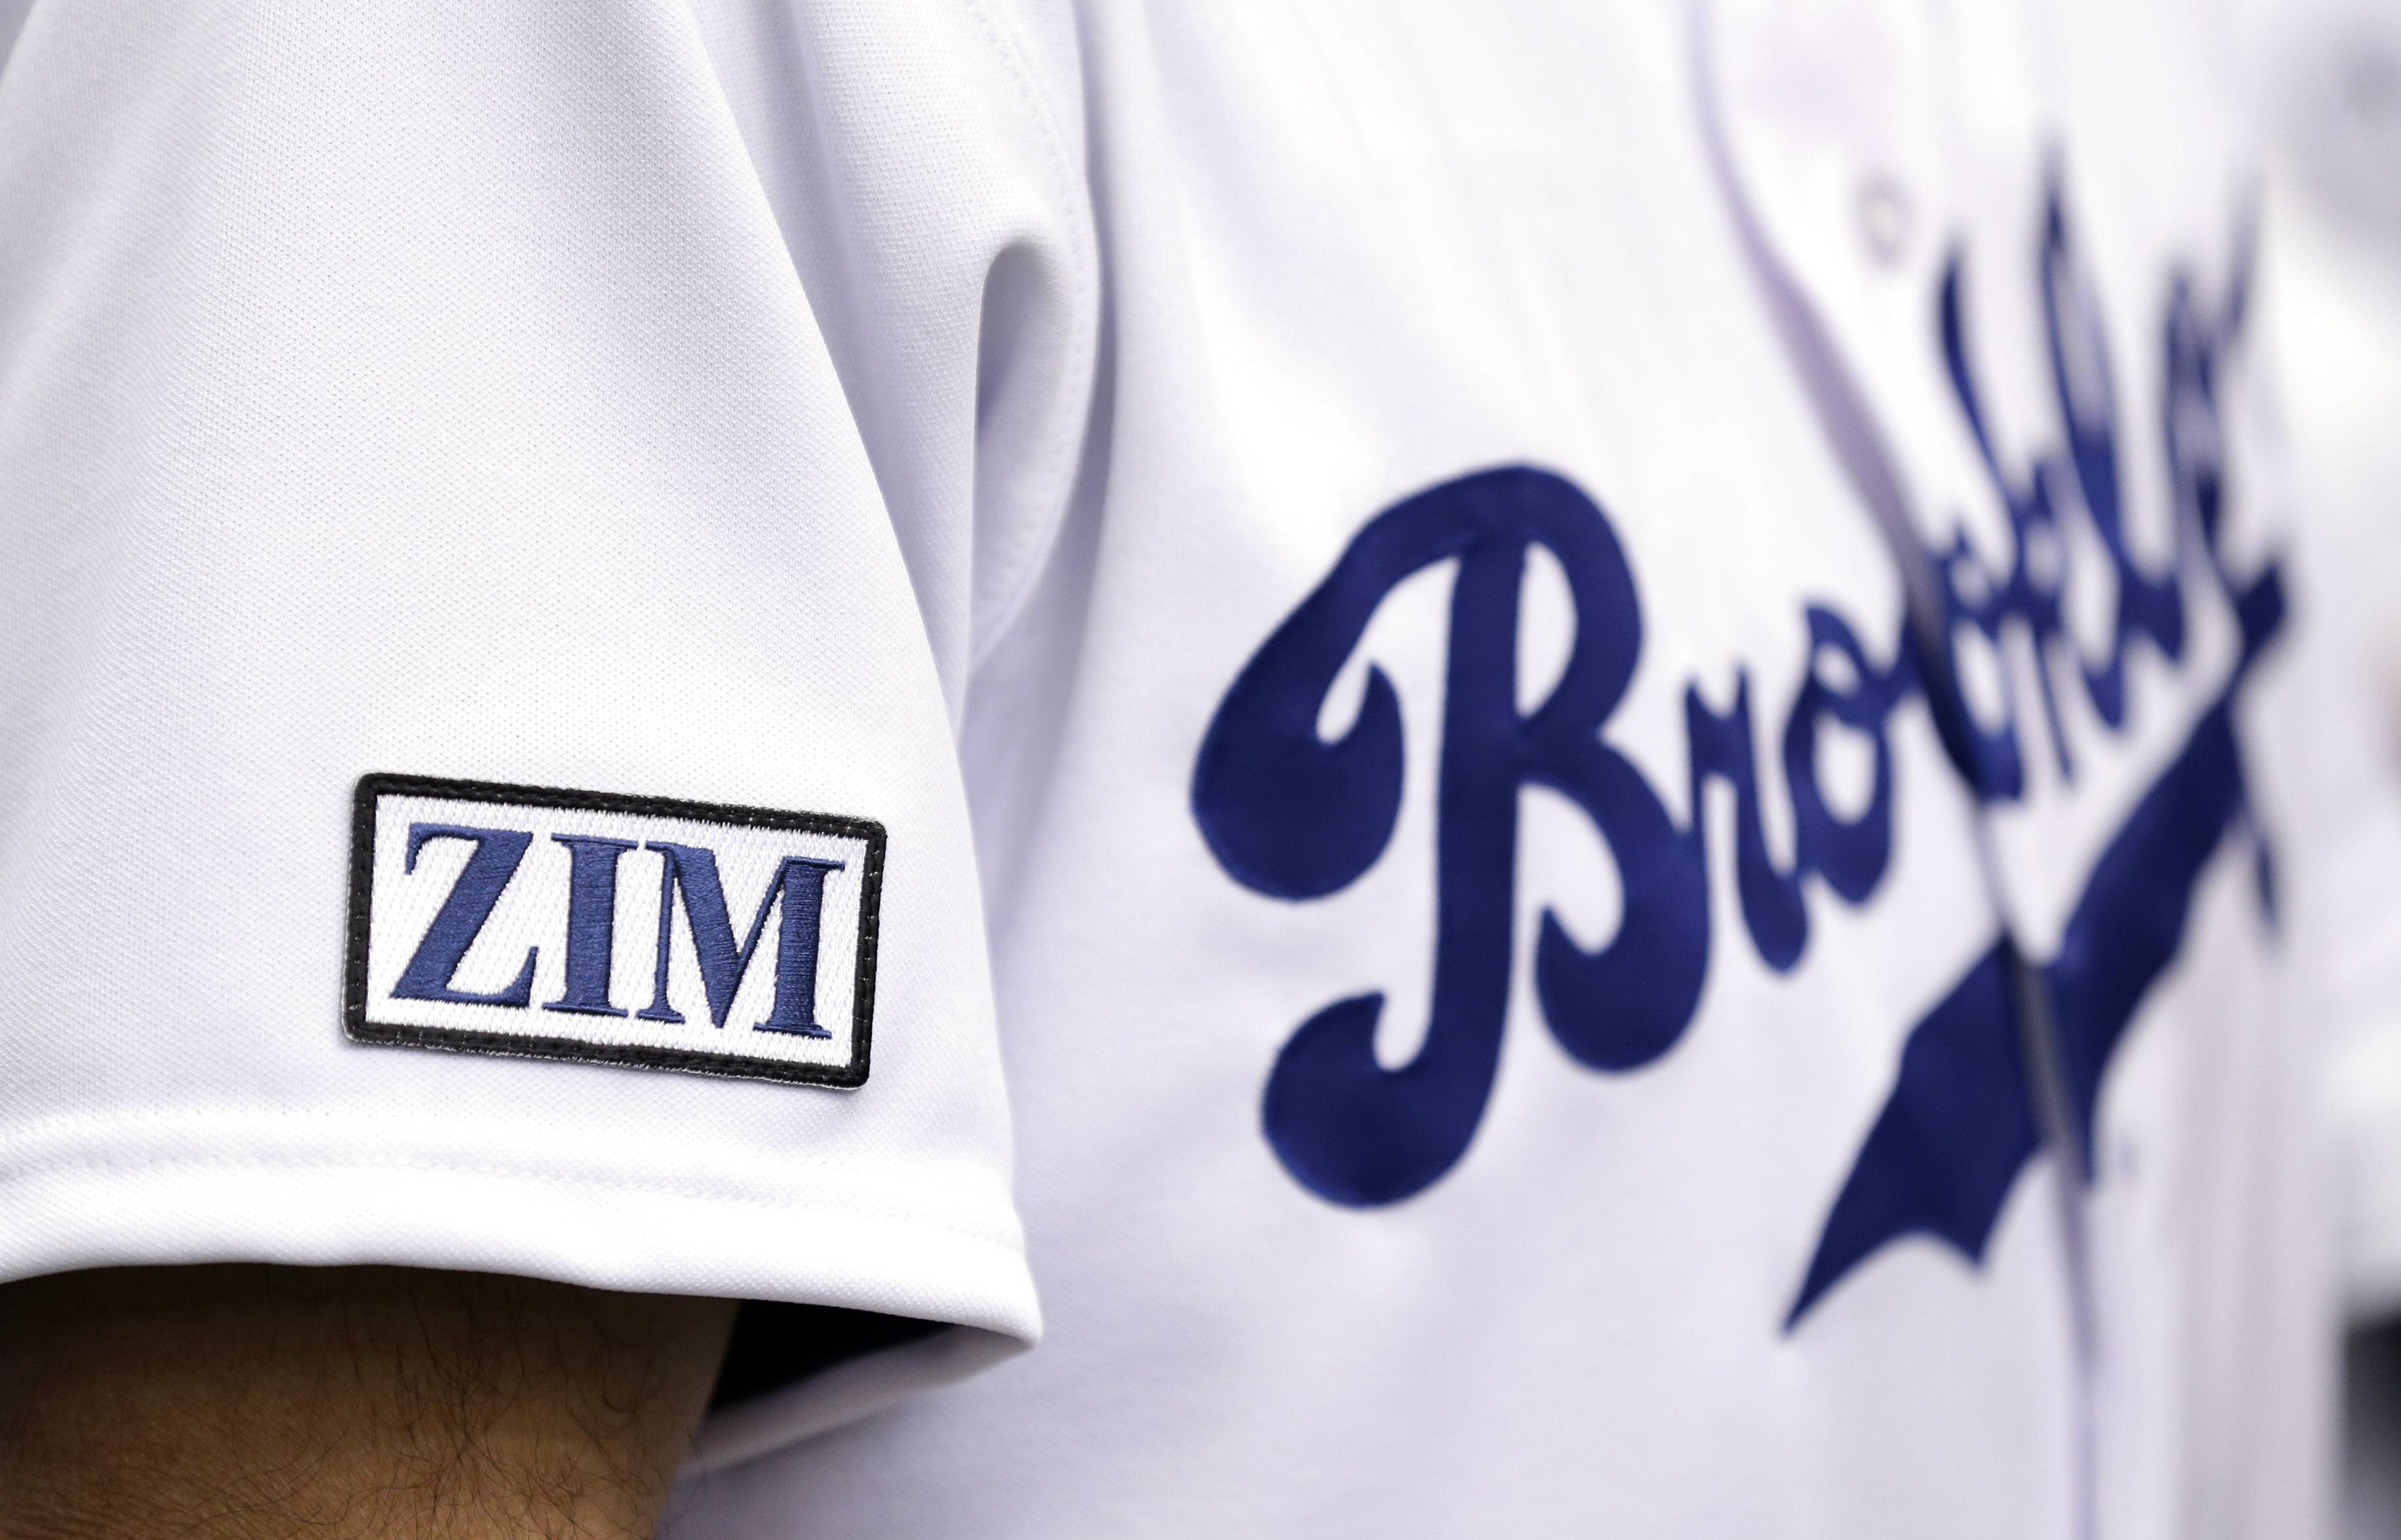 Tampa Bay Rays players wear a Brooklyn Dodgers replica jersey and patch honoring senior baseball adviser Don Zimmer before a baseball game against the Seattle Mariners Saturday, June 7, 2014, in St. Petersburg, Fla. Zimmer passed away earlier this week at the age of 83.